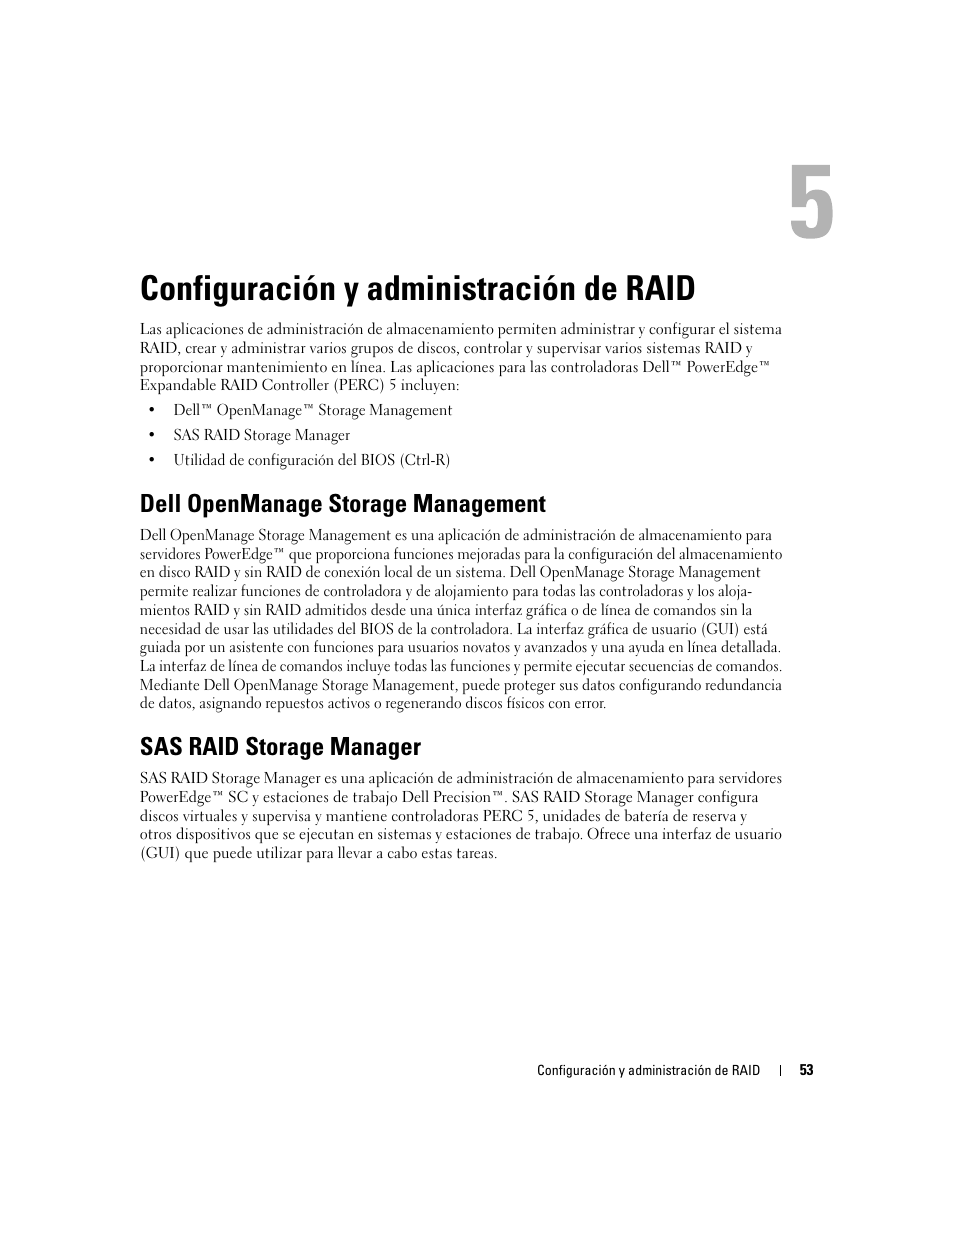 dell openmanage manual